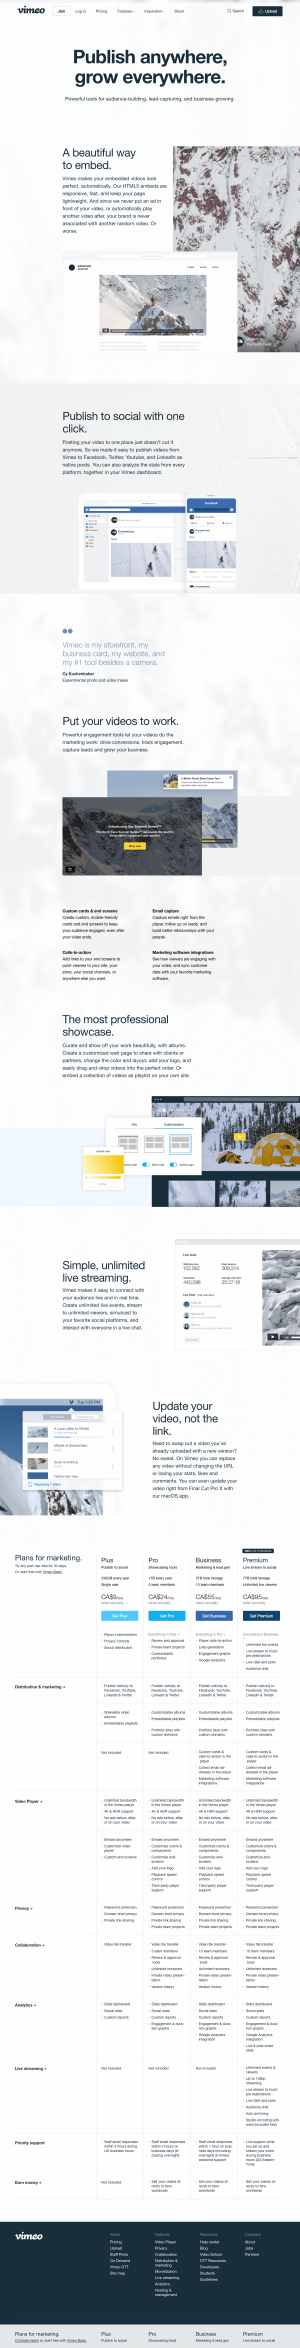 Vimeo - Features page 2